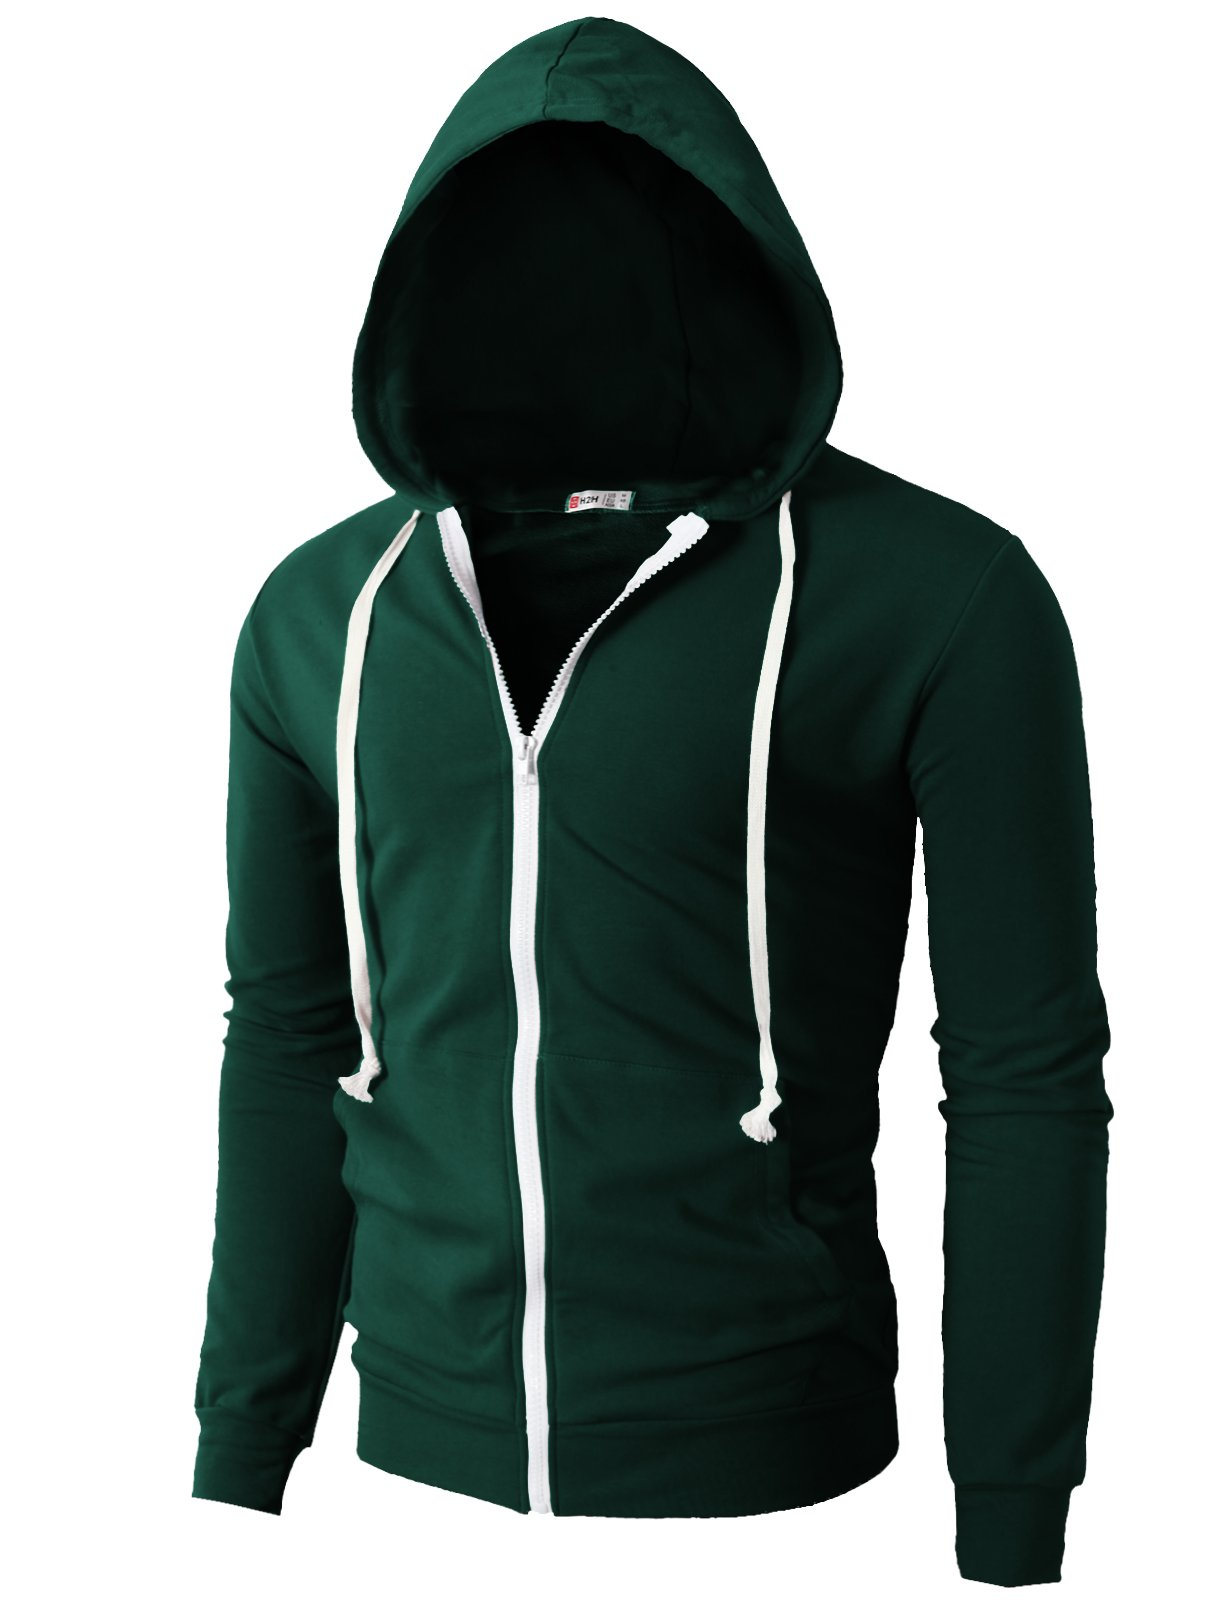 H2H Men's Casual Striped Drawstring Hooded And Zipper Closure Hoodies FORESTGREEN US XL/Asia XXXL (JNSK24) by H2H (Image #2)